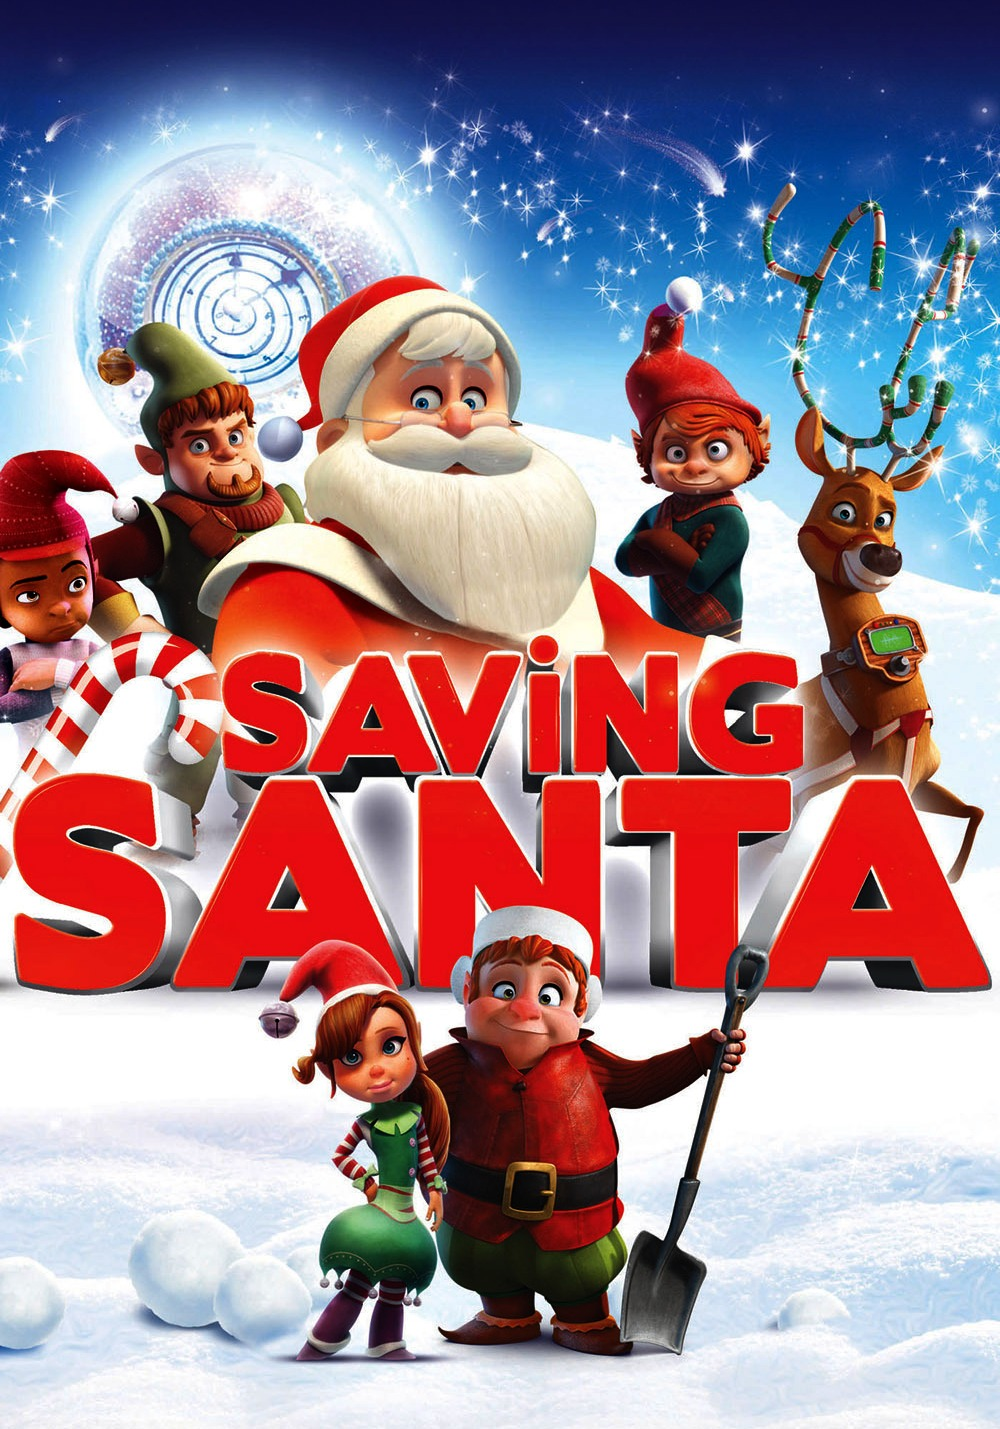 12 Days of Christmas Movies on Netflix - Reel Life With Jane